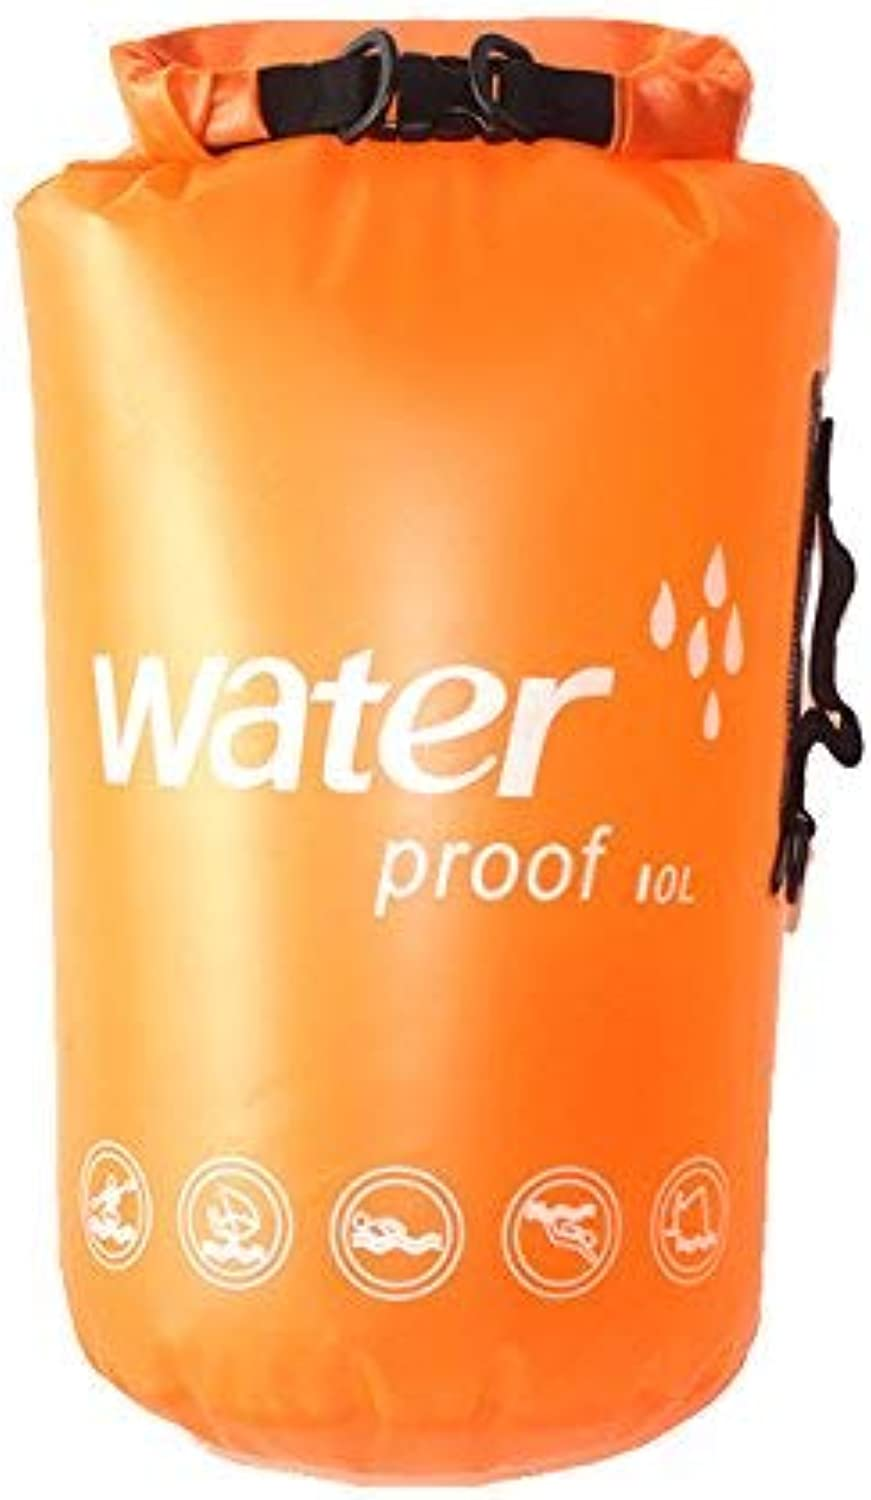 E-Onfoot Waterproof Dry Bag with Shoulder Strap - Roll Top Dry Compression Sack Keeps Gear Dry for Kayaking Rafting Boating Swimming Camping Hiking Beach Fishing (orange-10L)